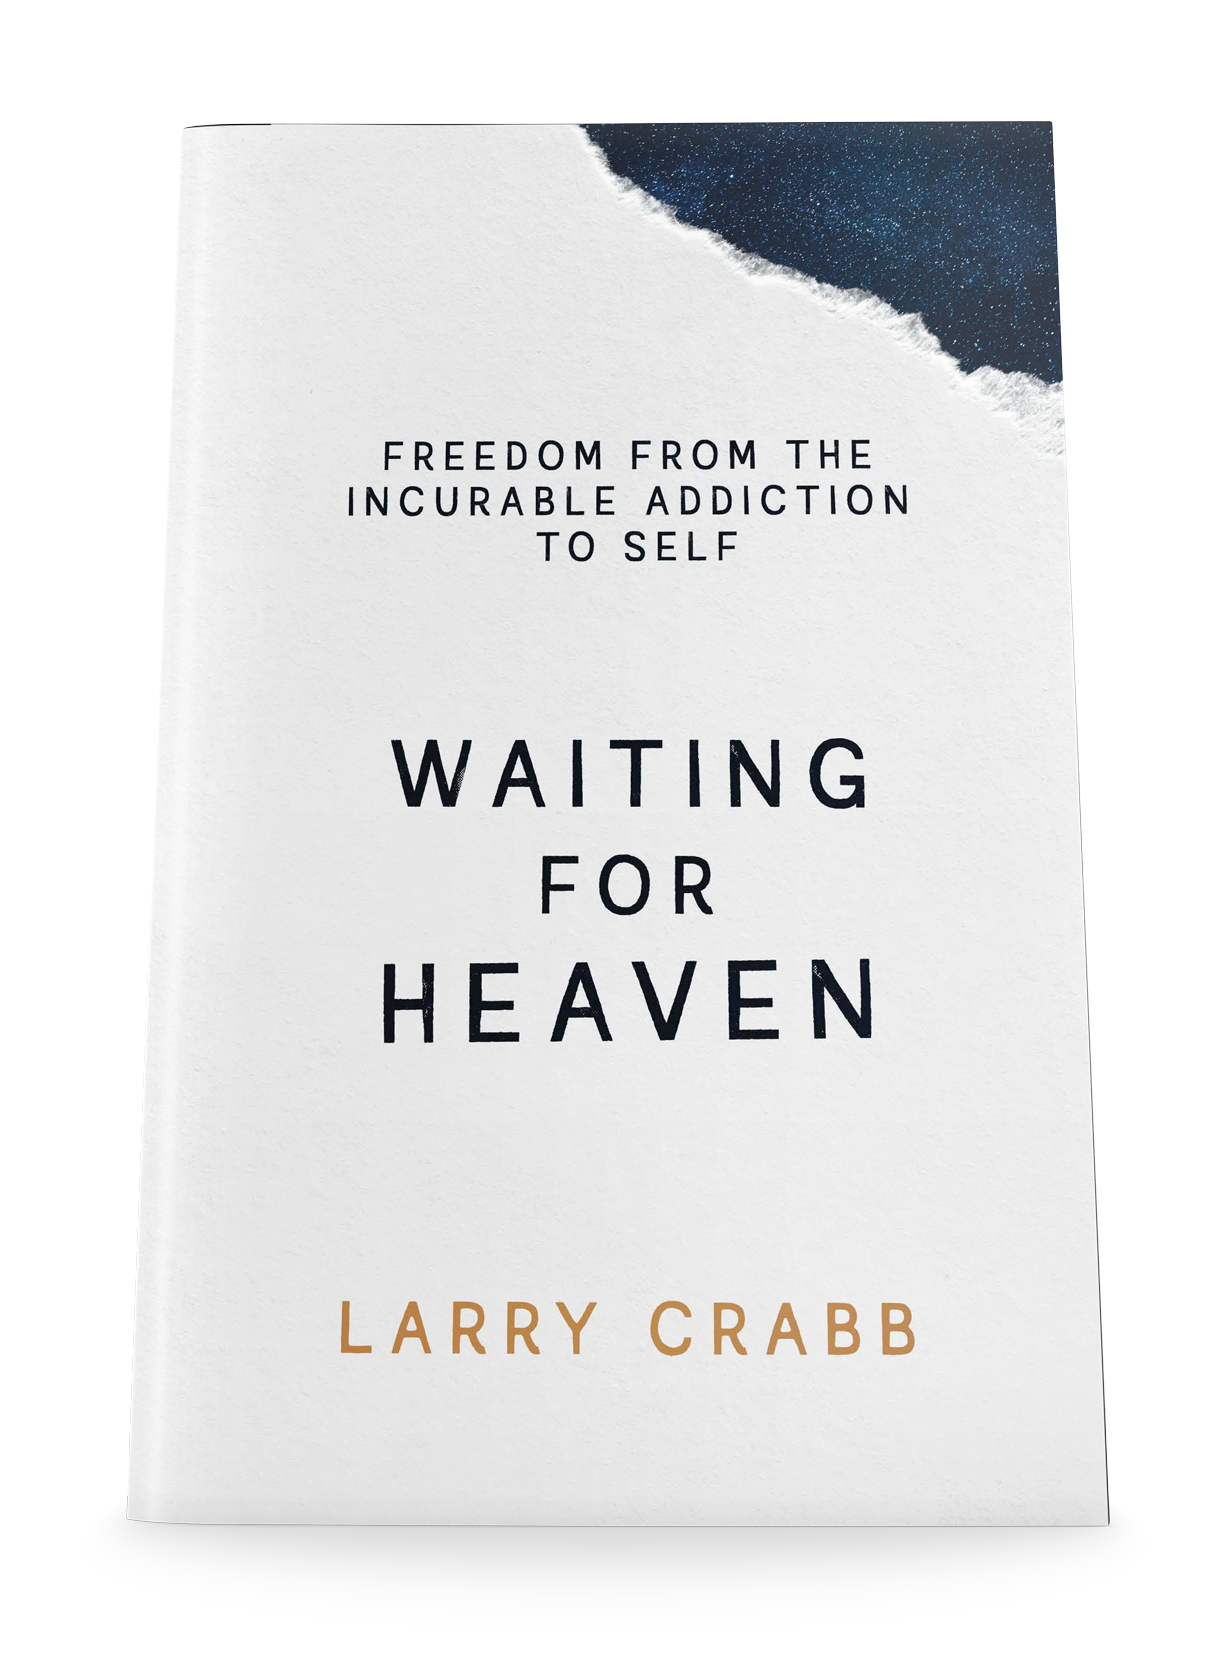 Waiting for Heaven book paperback cover